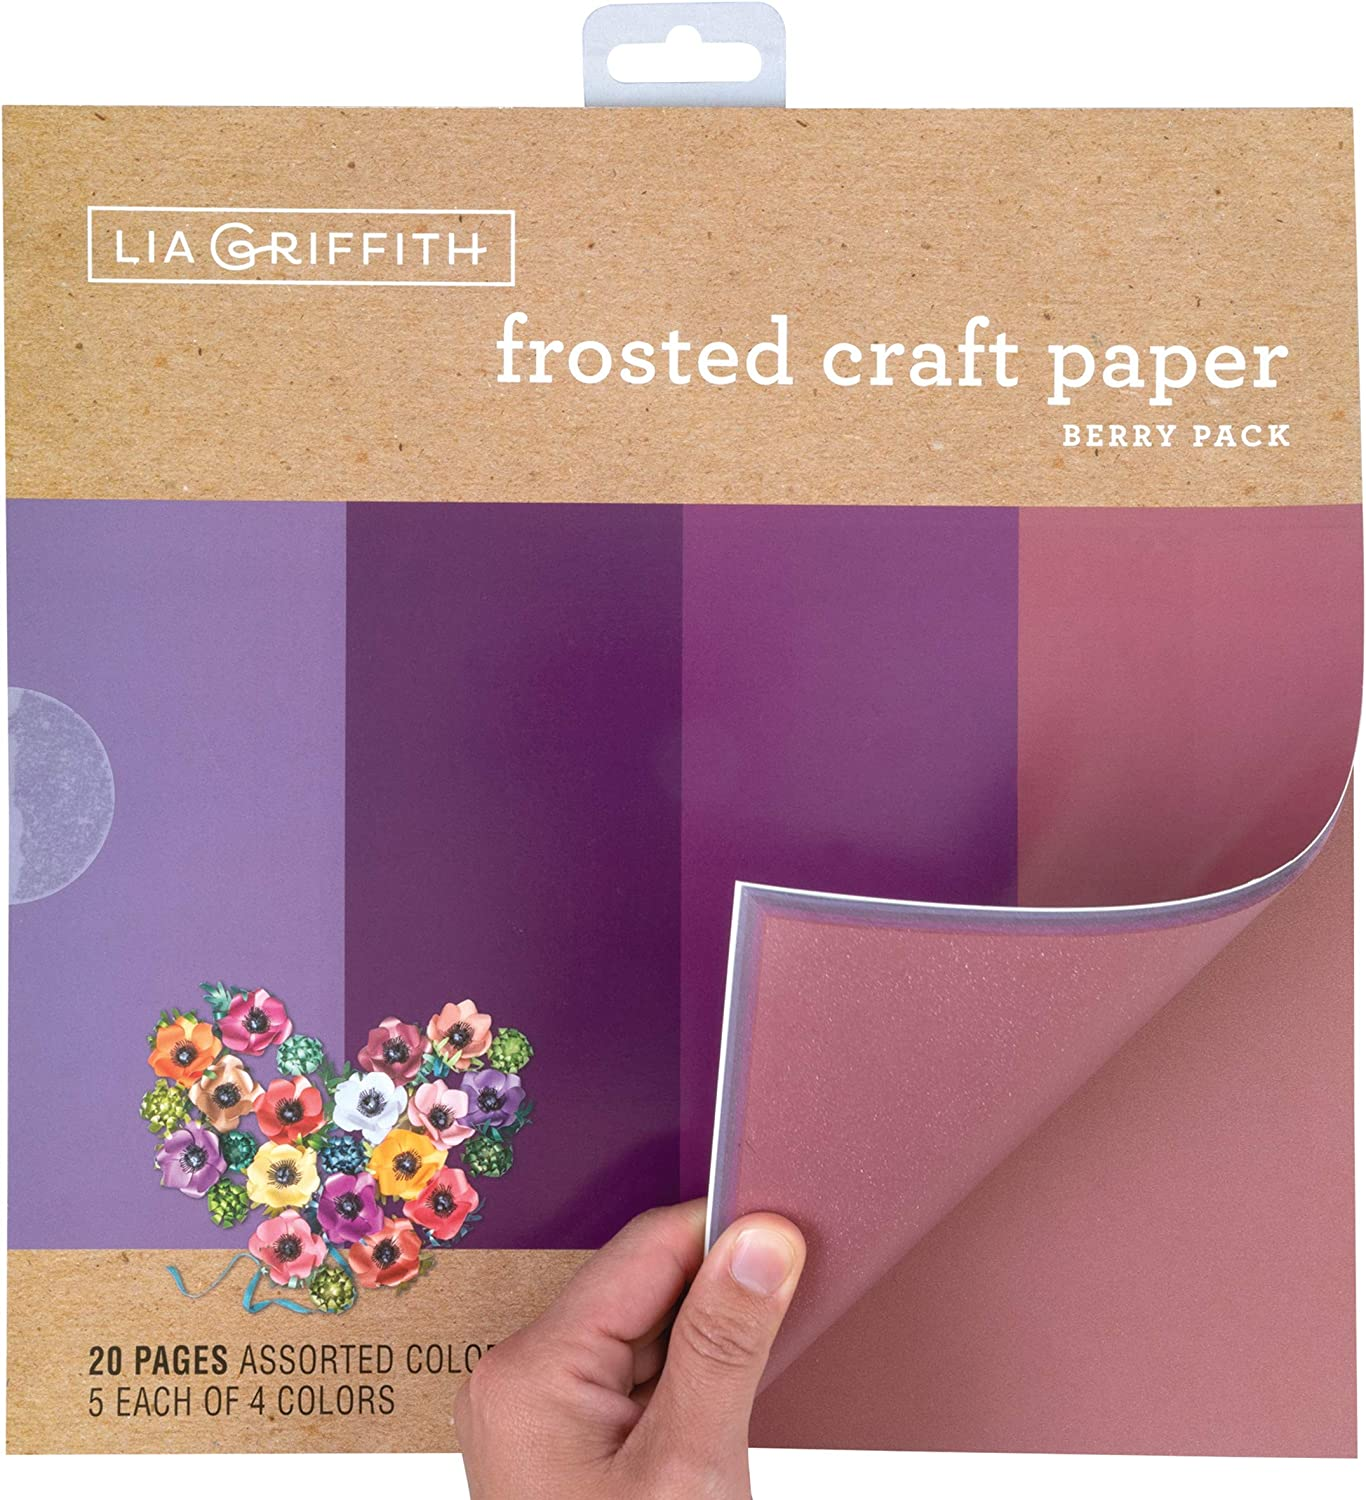 Lia Griffith Frosted Craft Paper 12 x 12 Berry Pack 20 Sheets